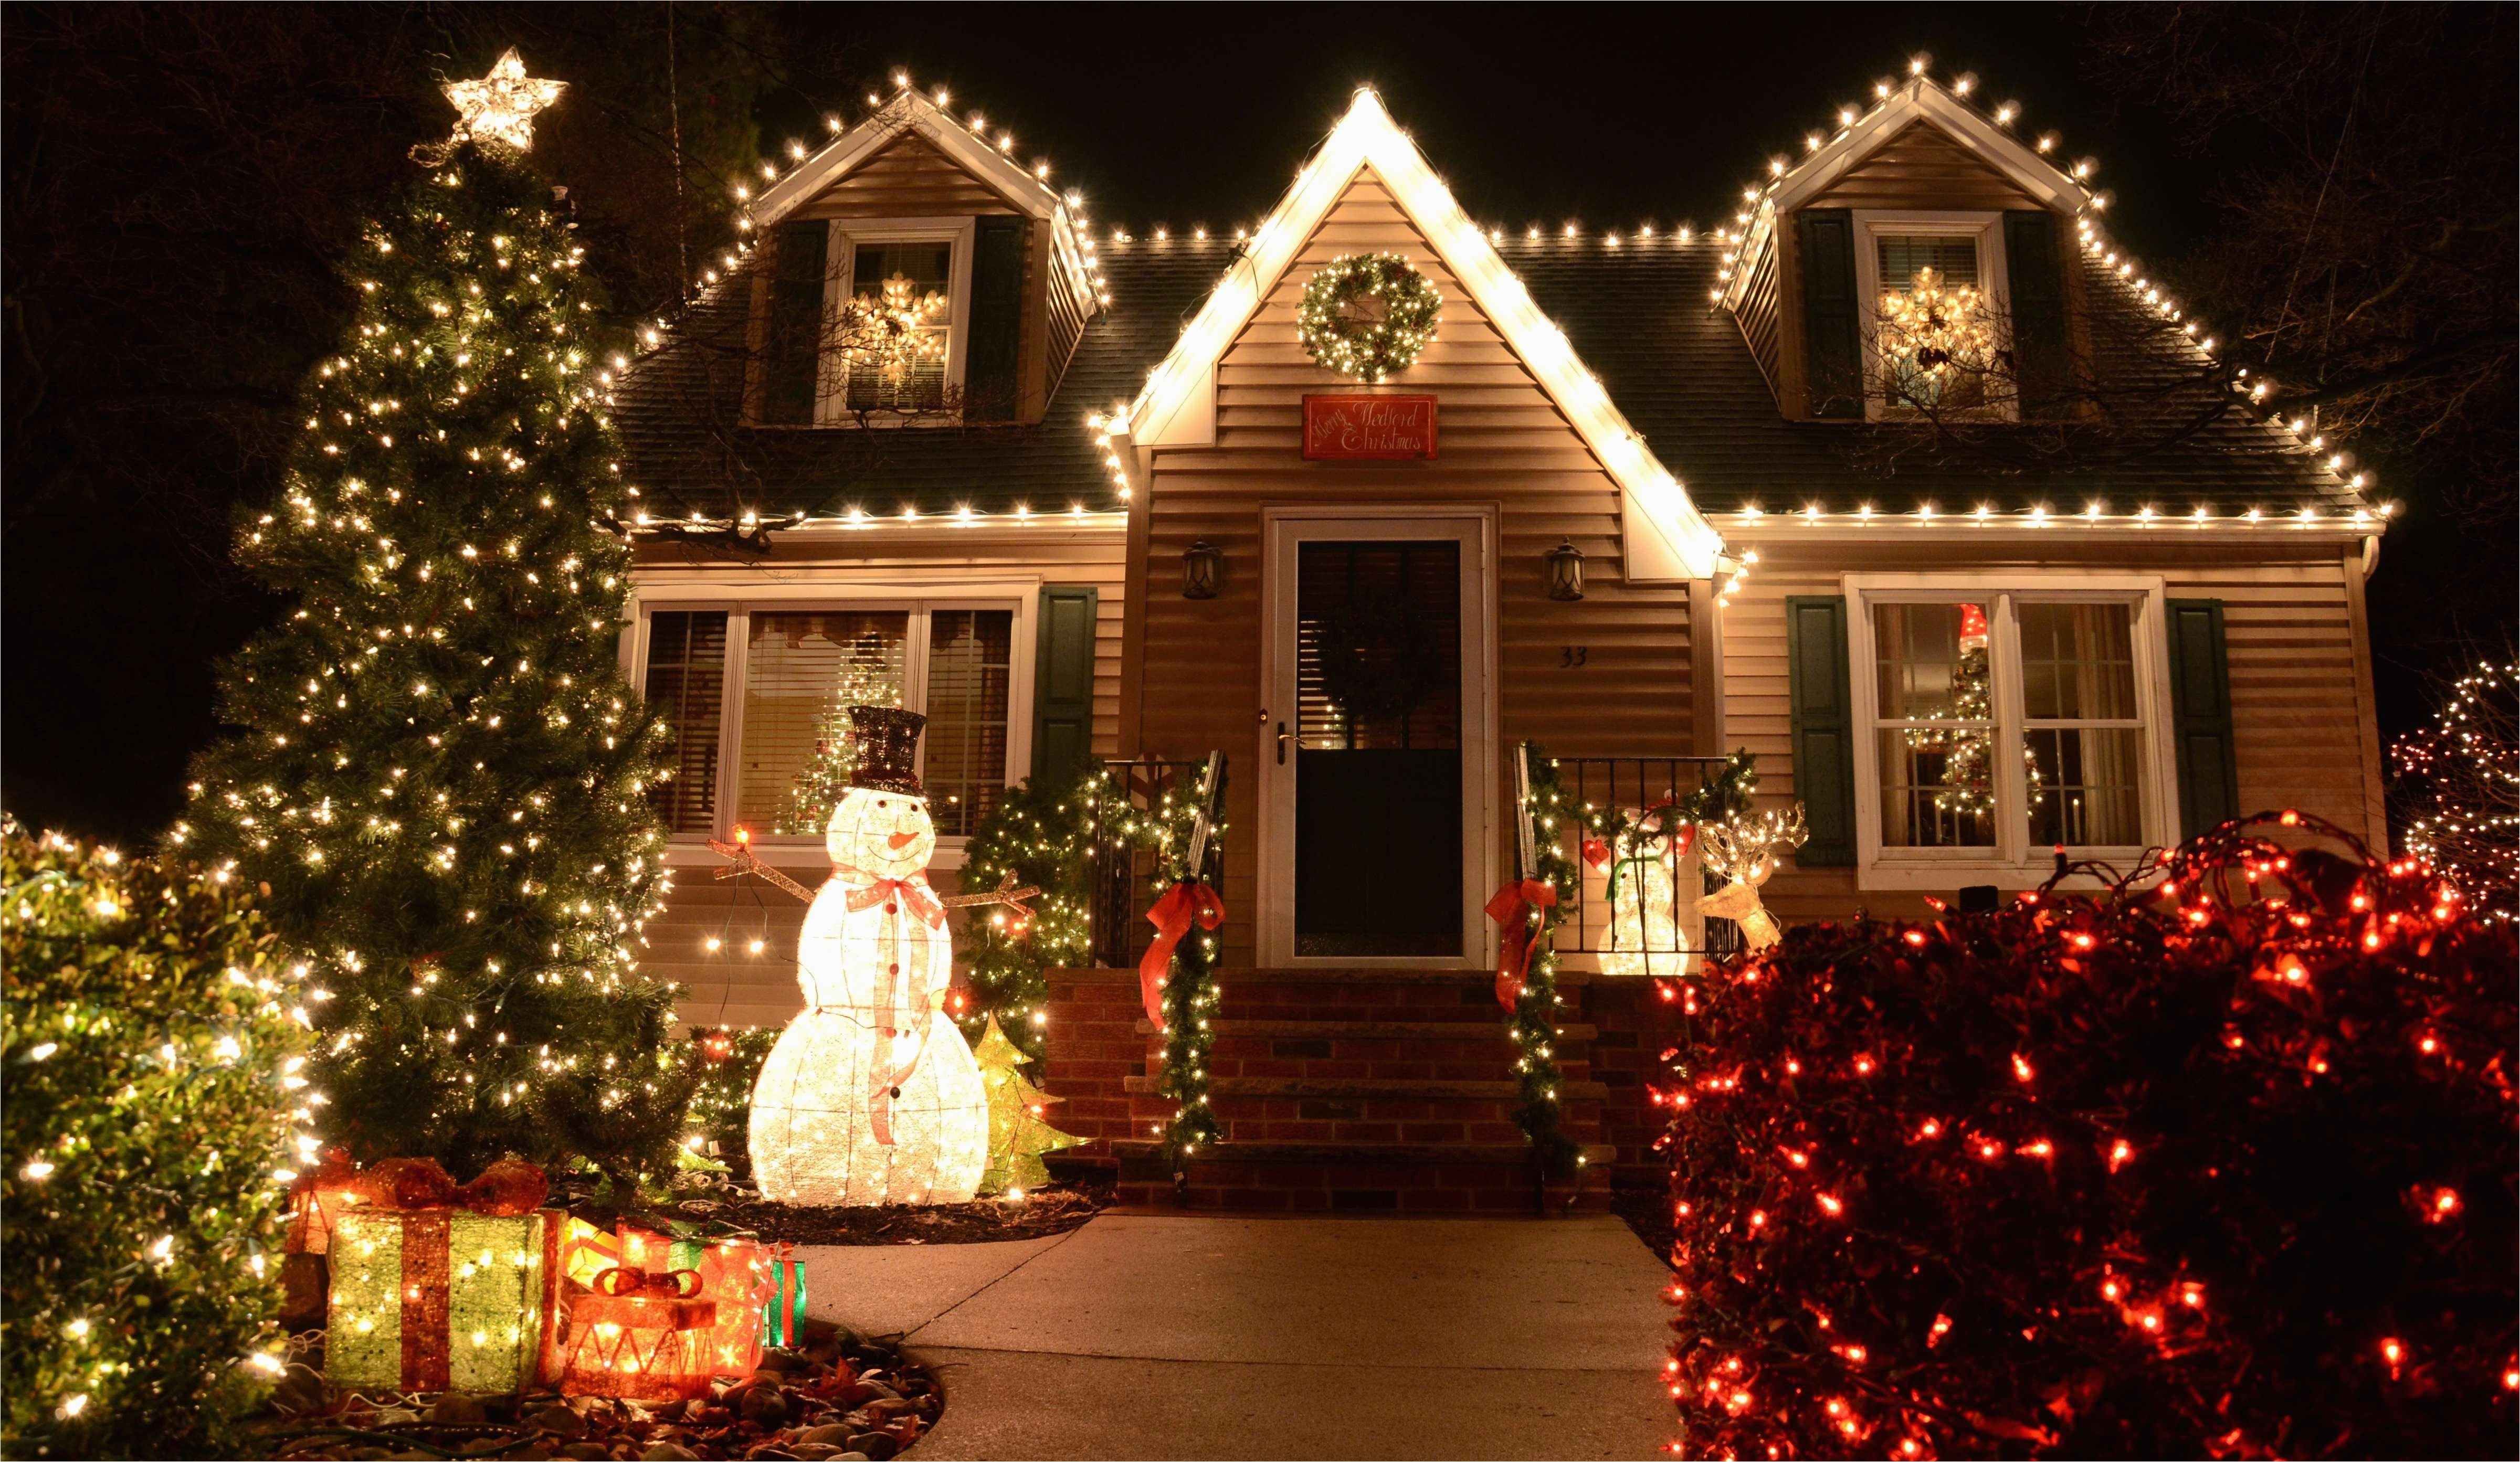 Outdoor Christmas Garland With Lights New Home Decor 2017 Unique Home Design Holland Home Holland Home